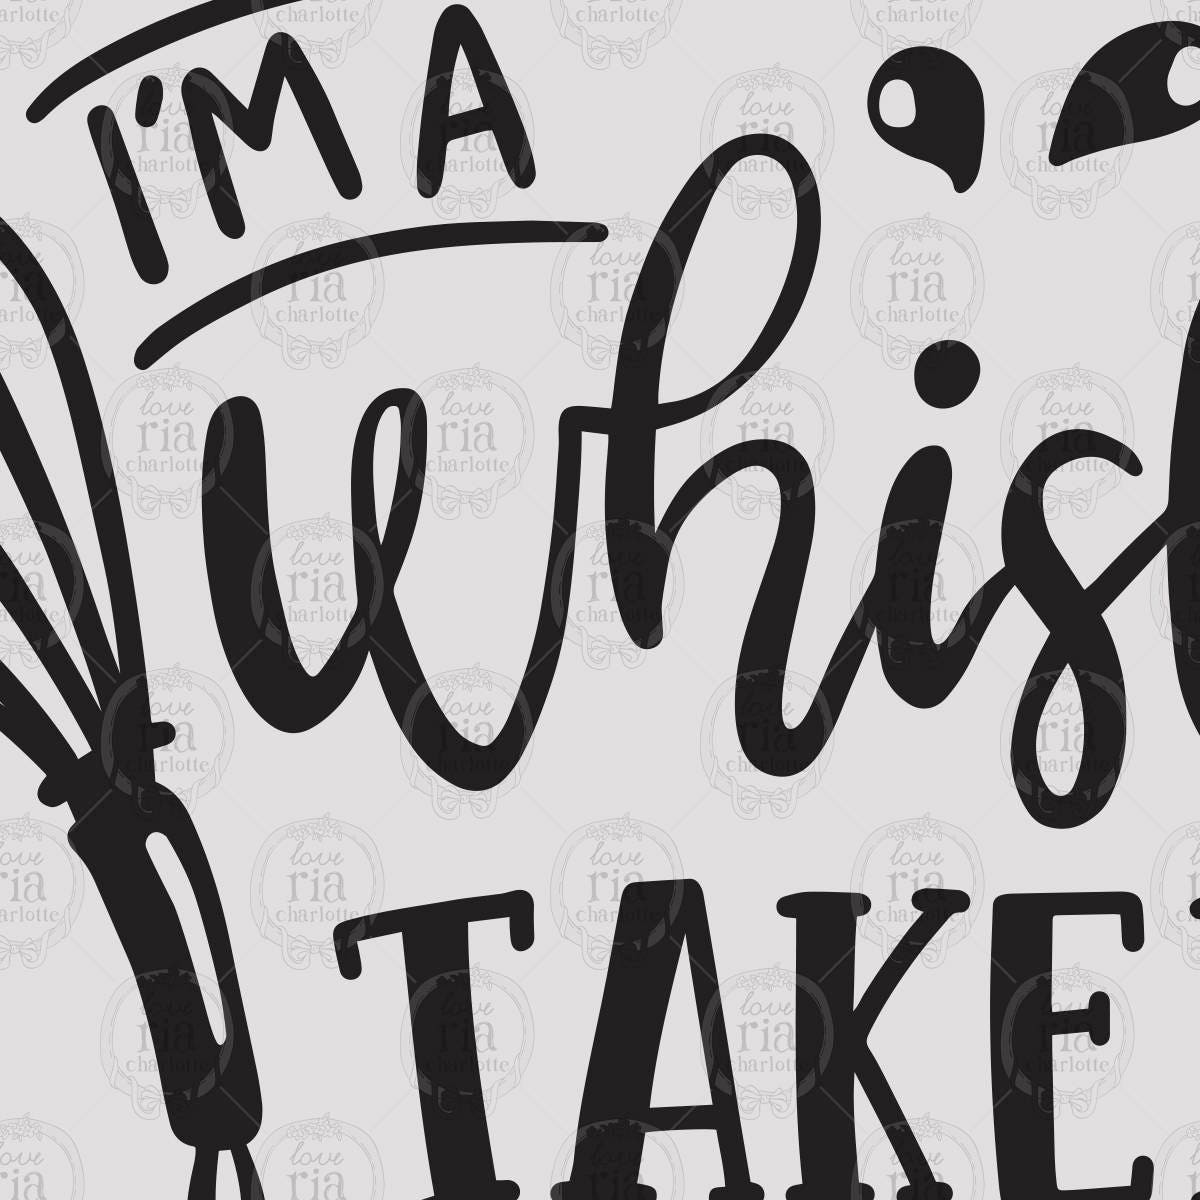 I M A Whisk Taker Fun Funny Quirky Baking Chef Quote